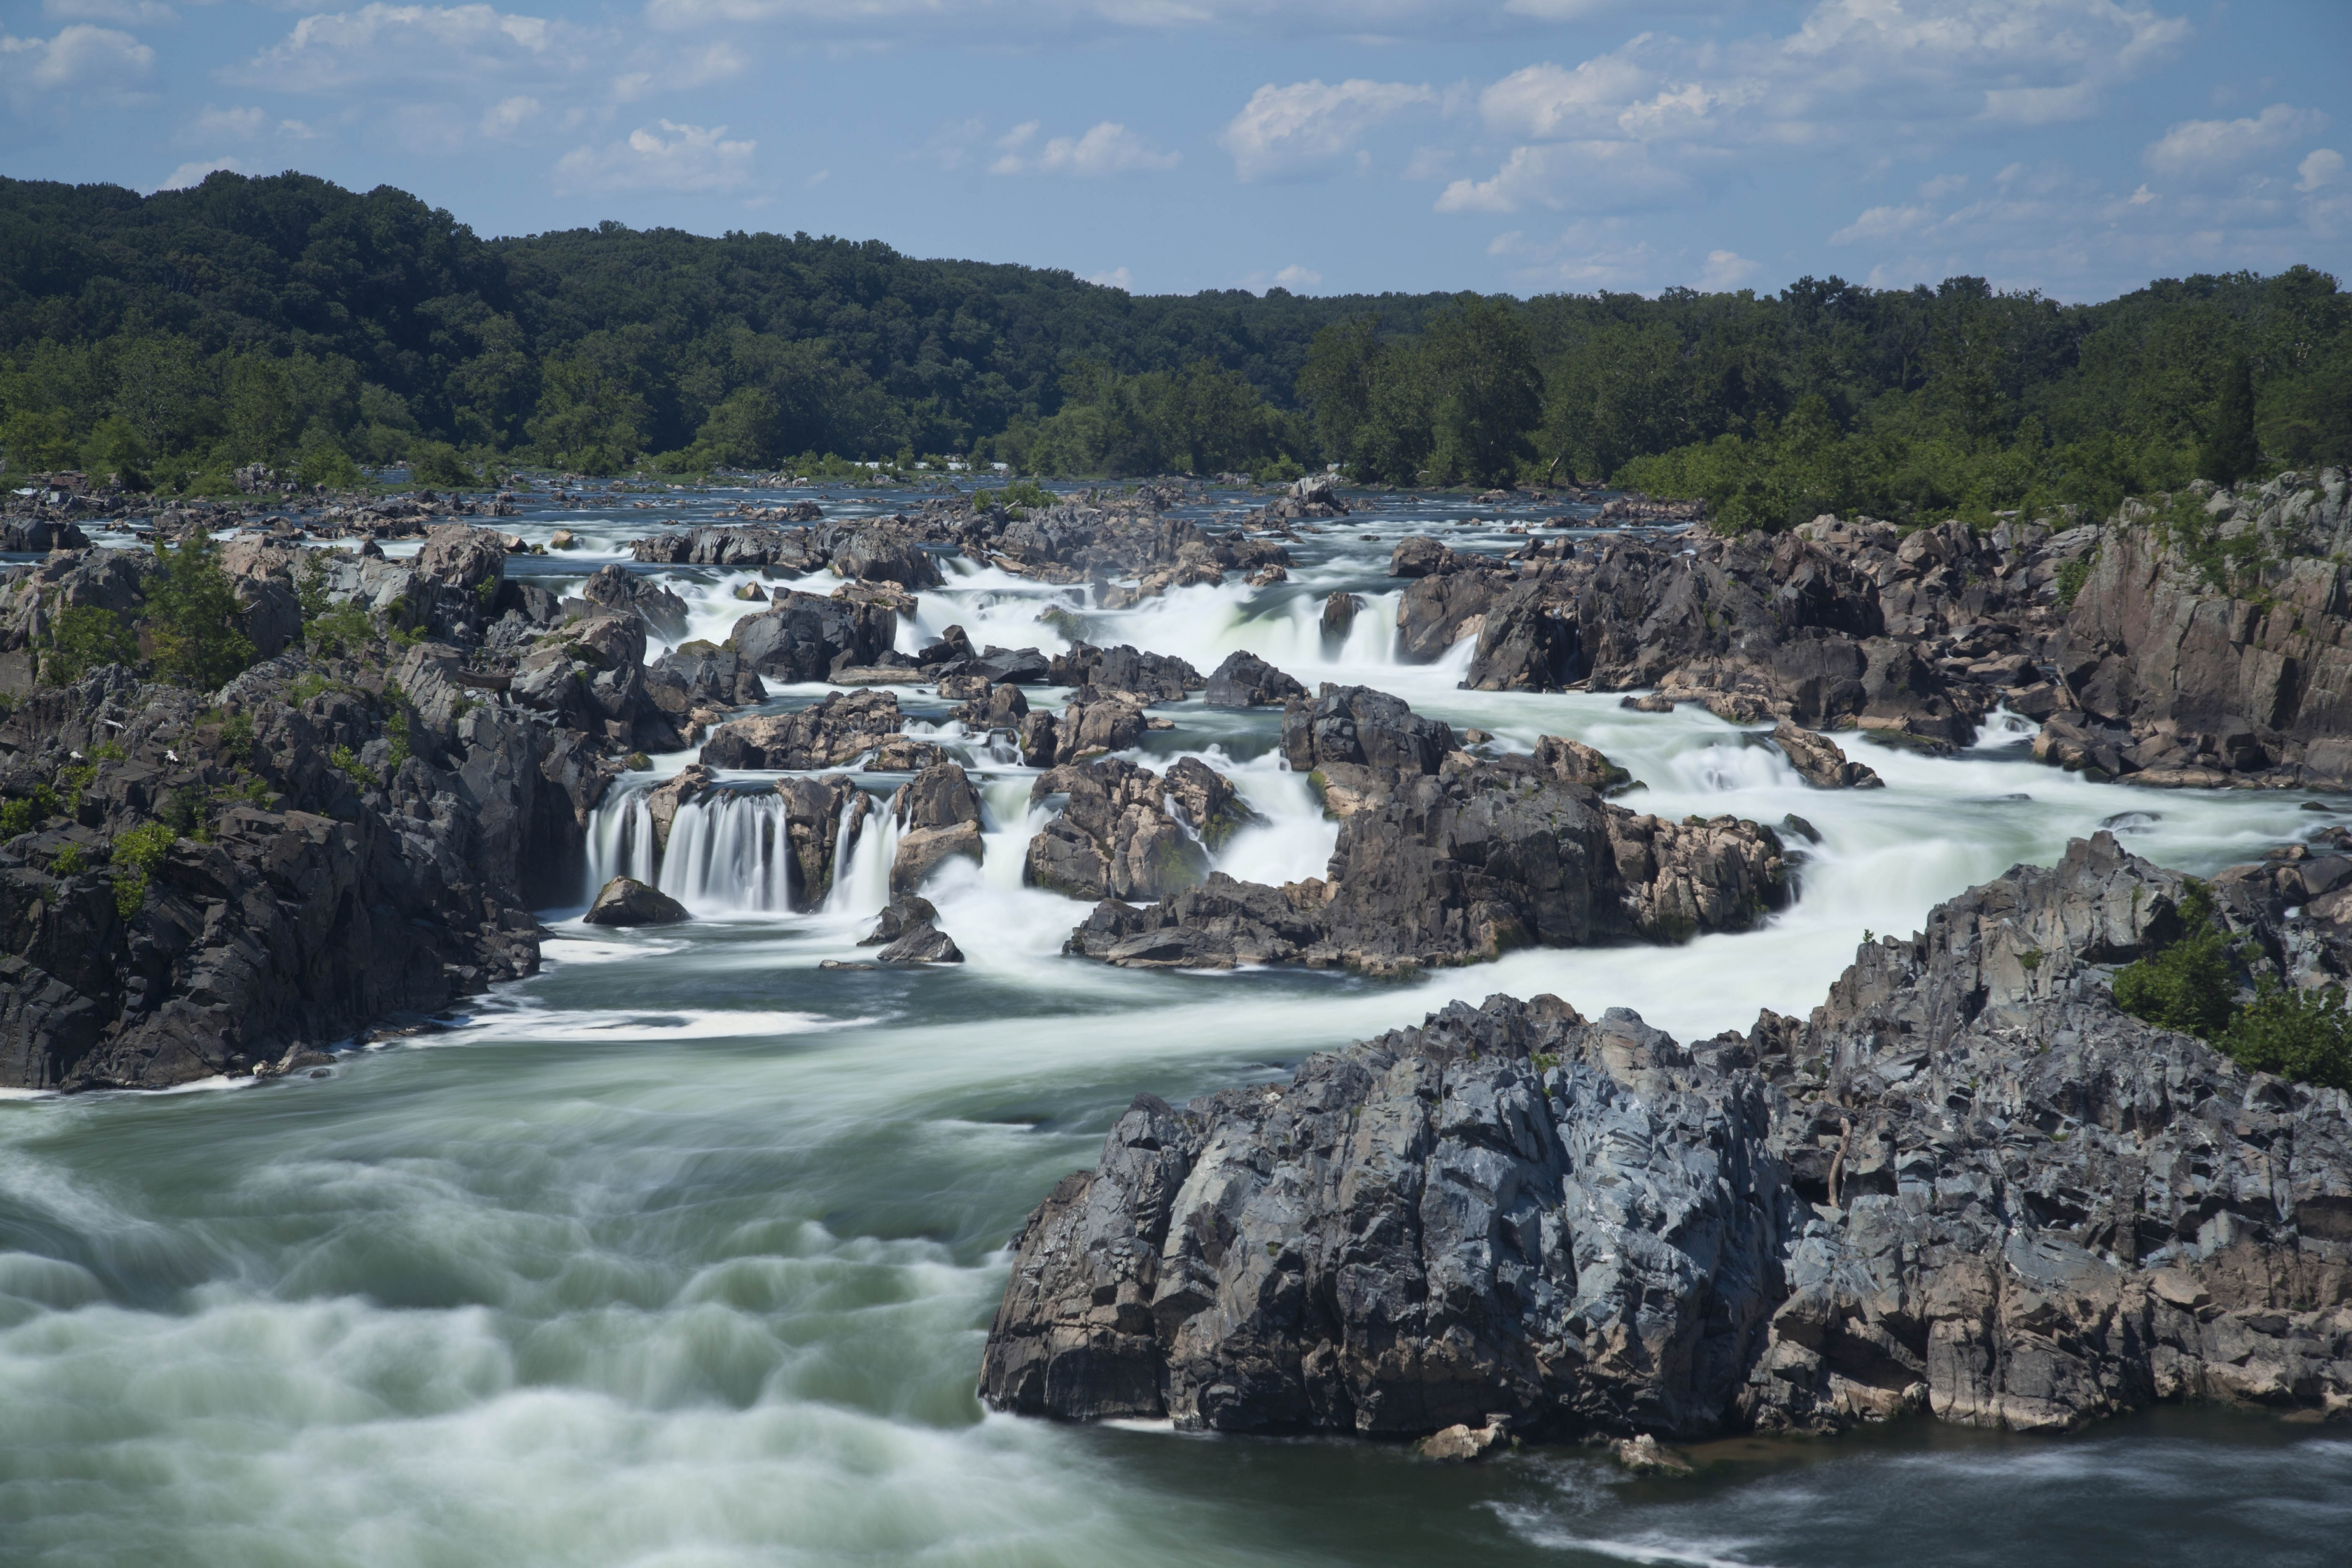 Great Falls National Park outside Washington, DC.